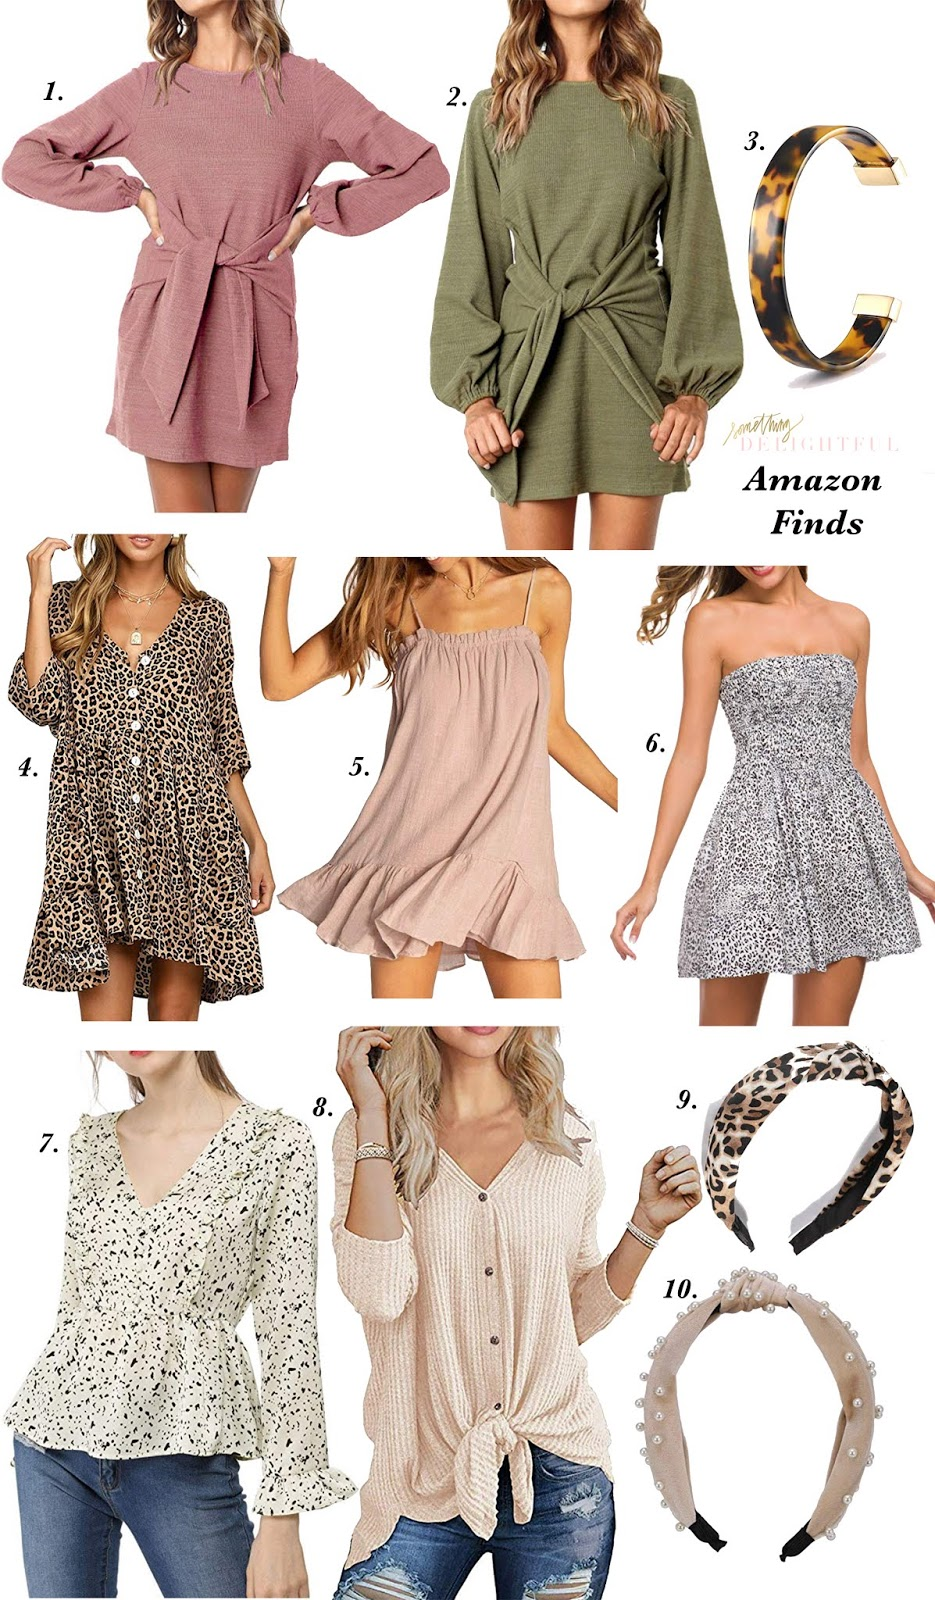 Amazon Friday: Under $30 Tie Front Dress + Recent Amazon Finds - Something Delightful Blog